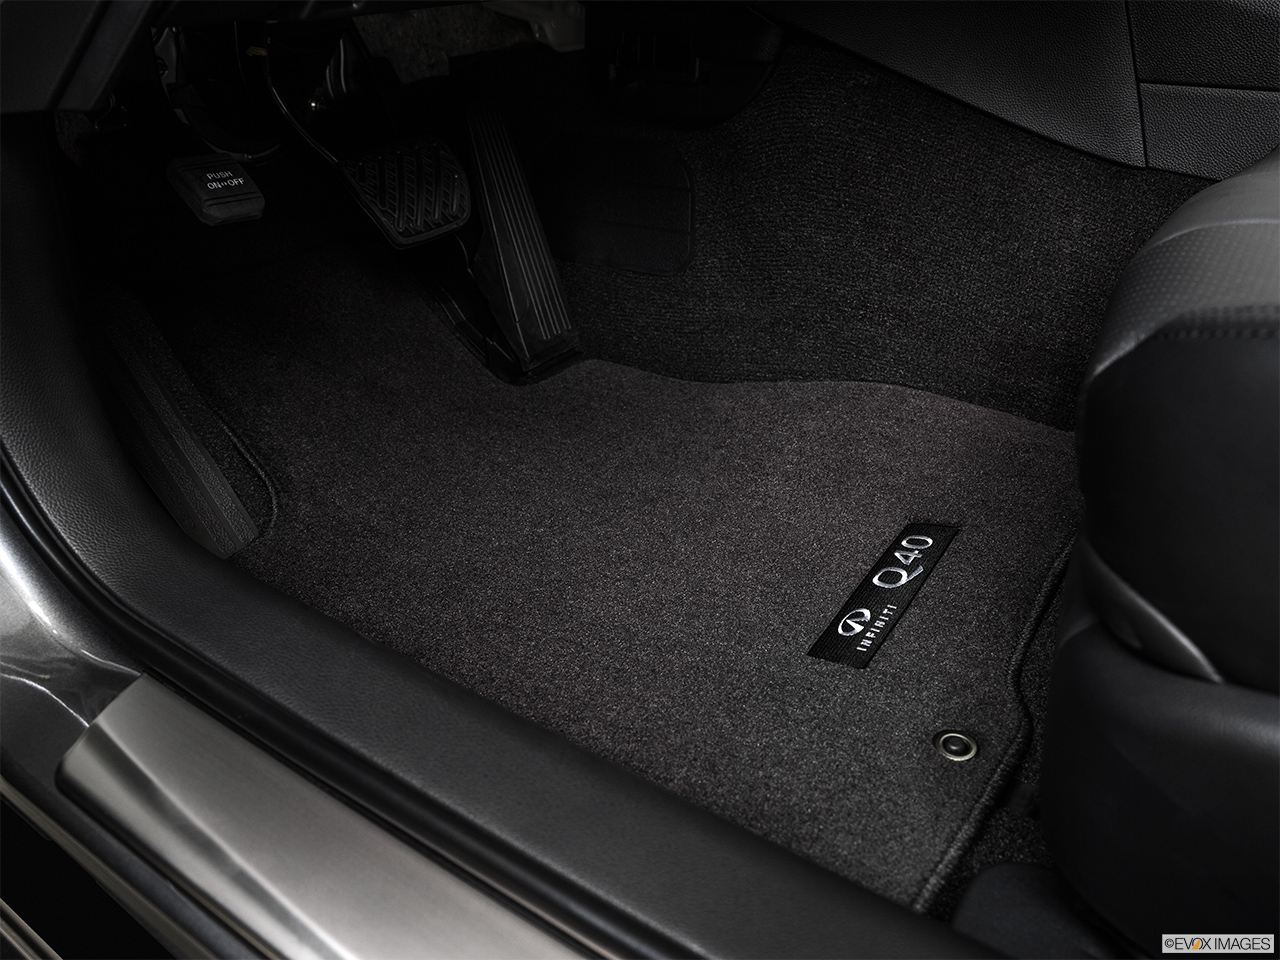 2015 Infiniti Q40 Base Driver's floor mat and pedals. Mid-seat level from outside looking in.